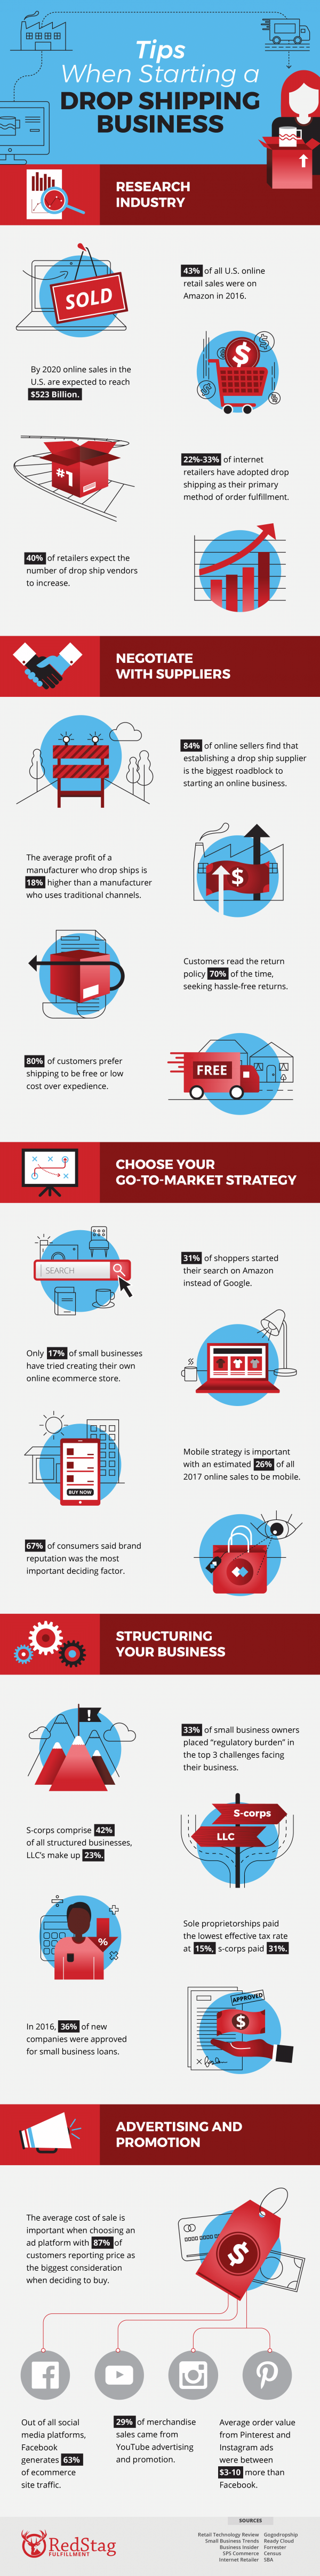 drop-shipping-guide-infographic